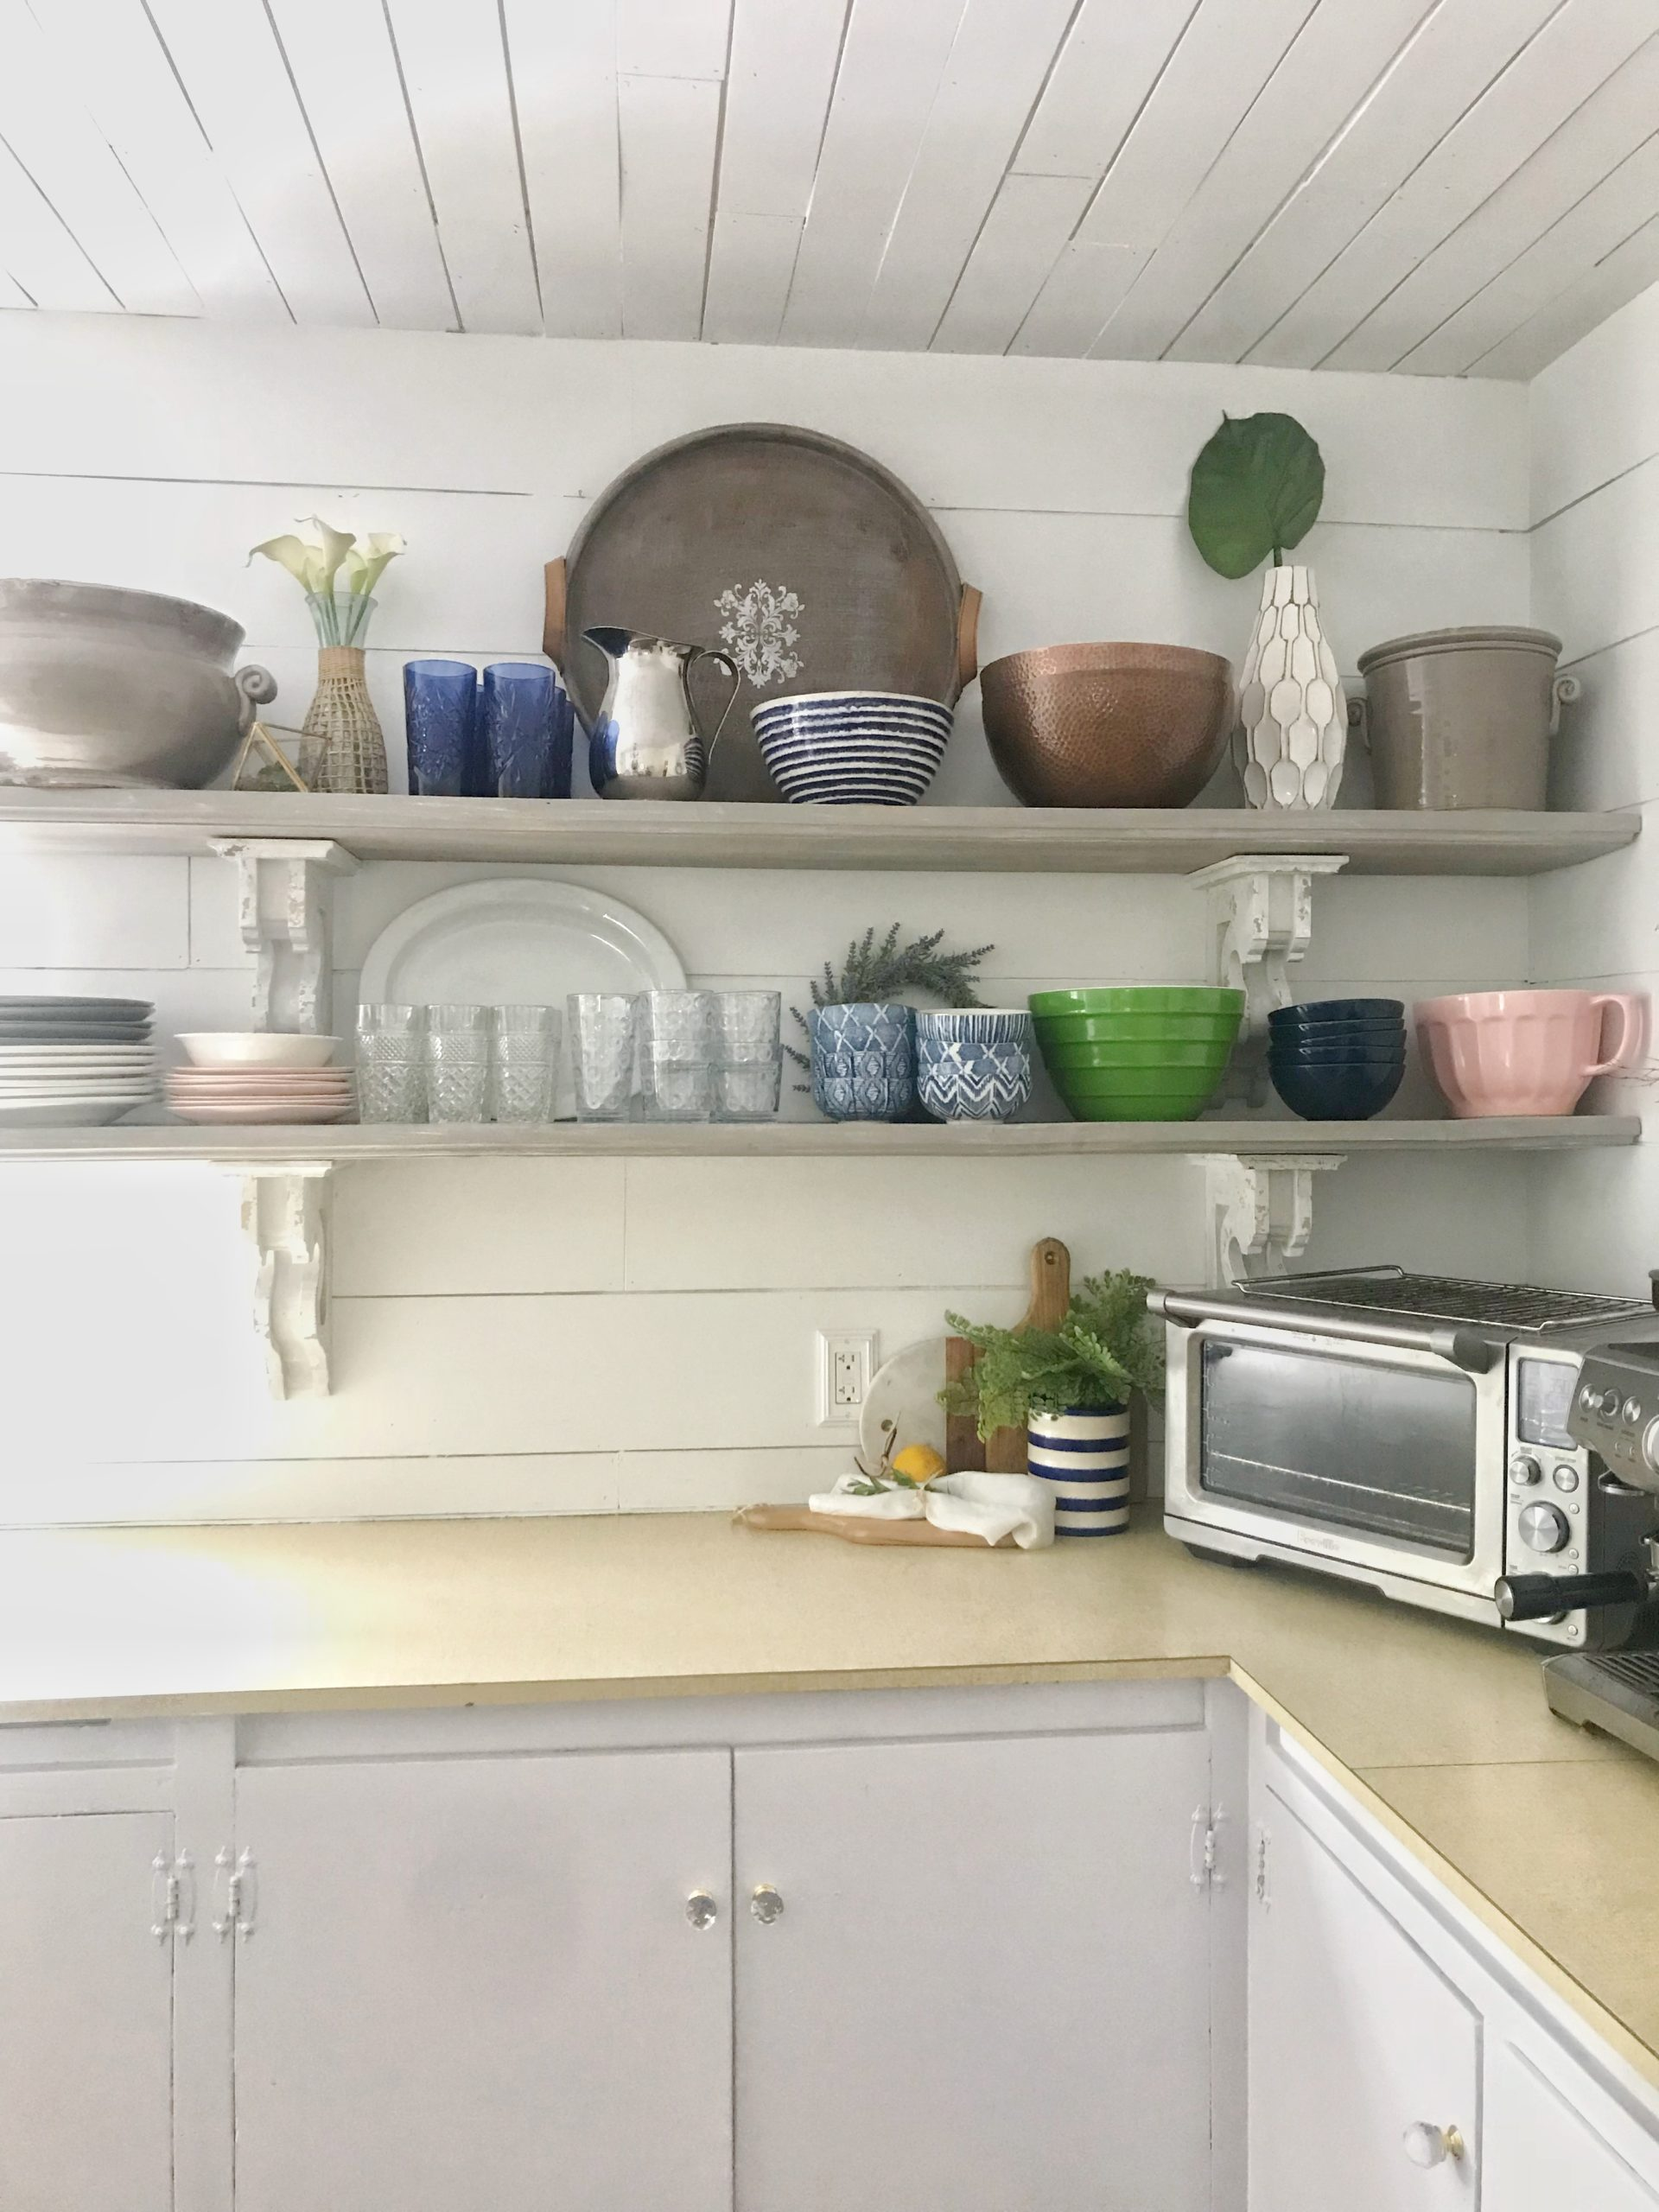 kitchen with 2 openshelves filled with bowlscups and plates